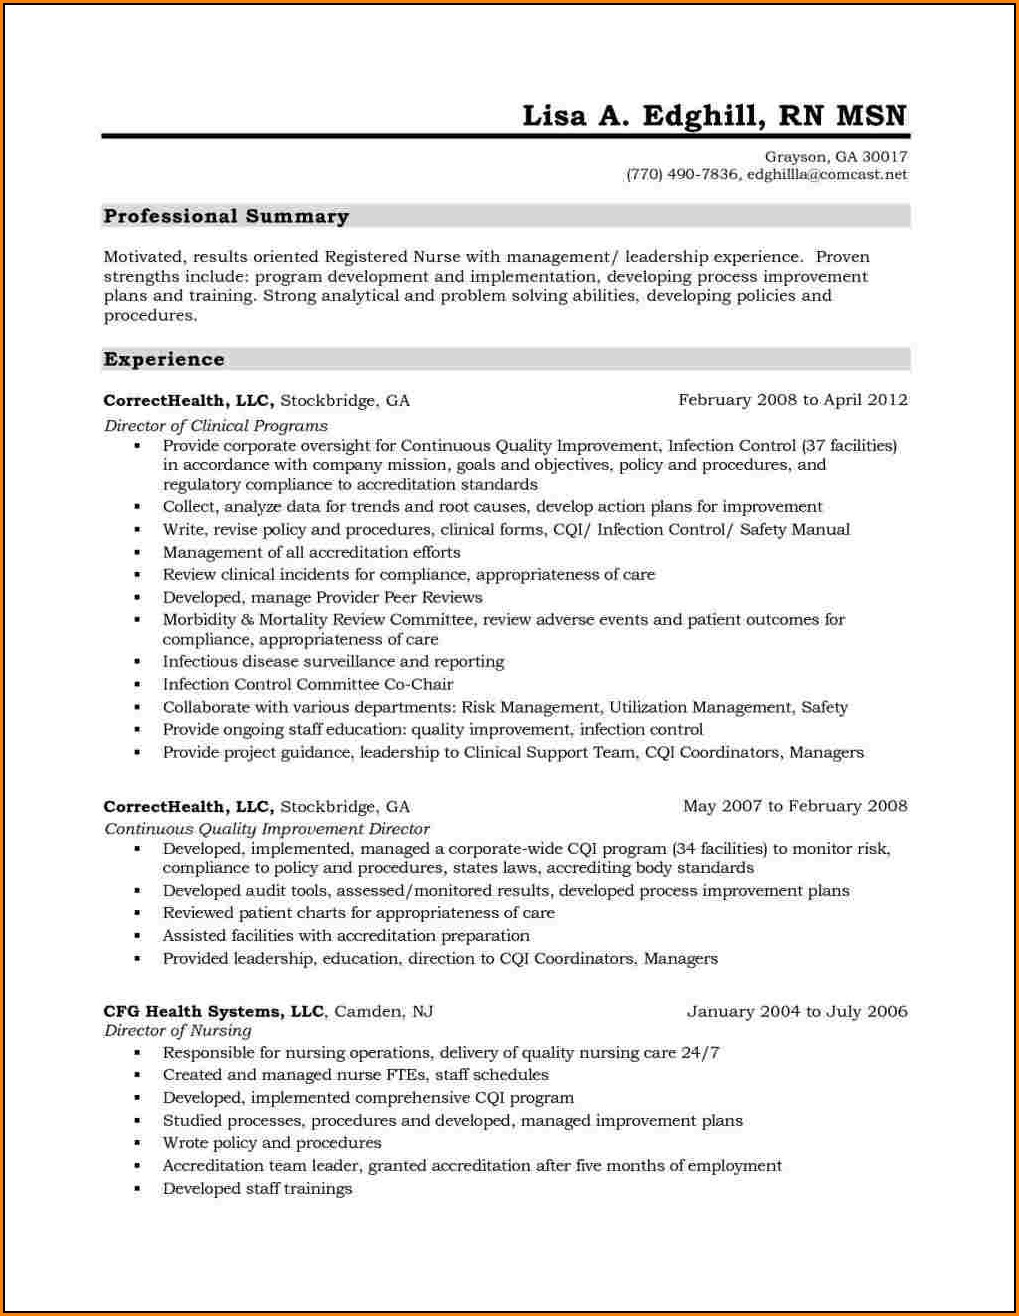 Resume For Registered Nurse Canada